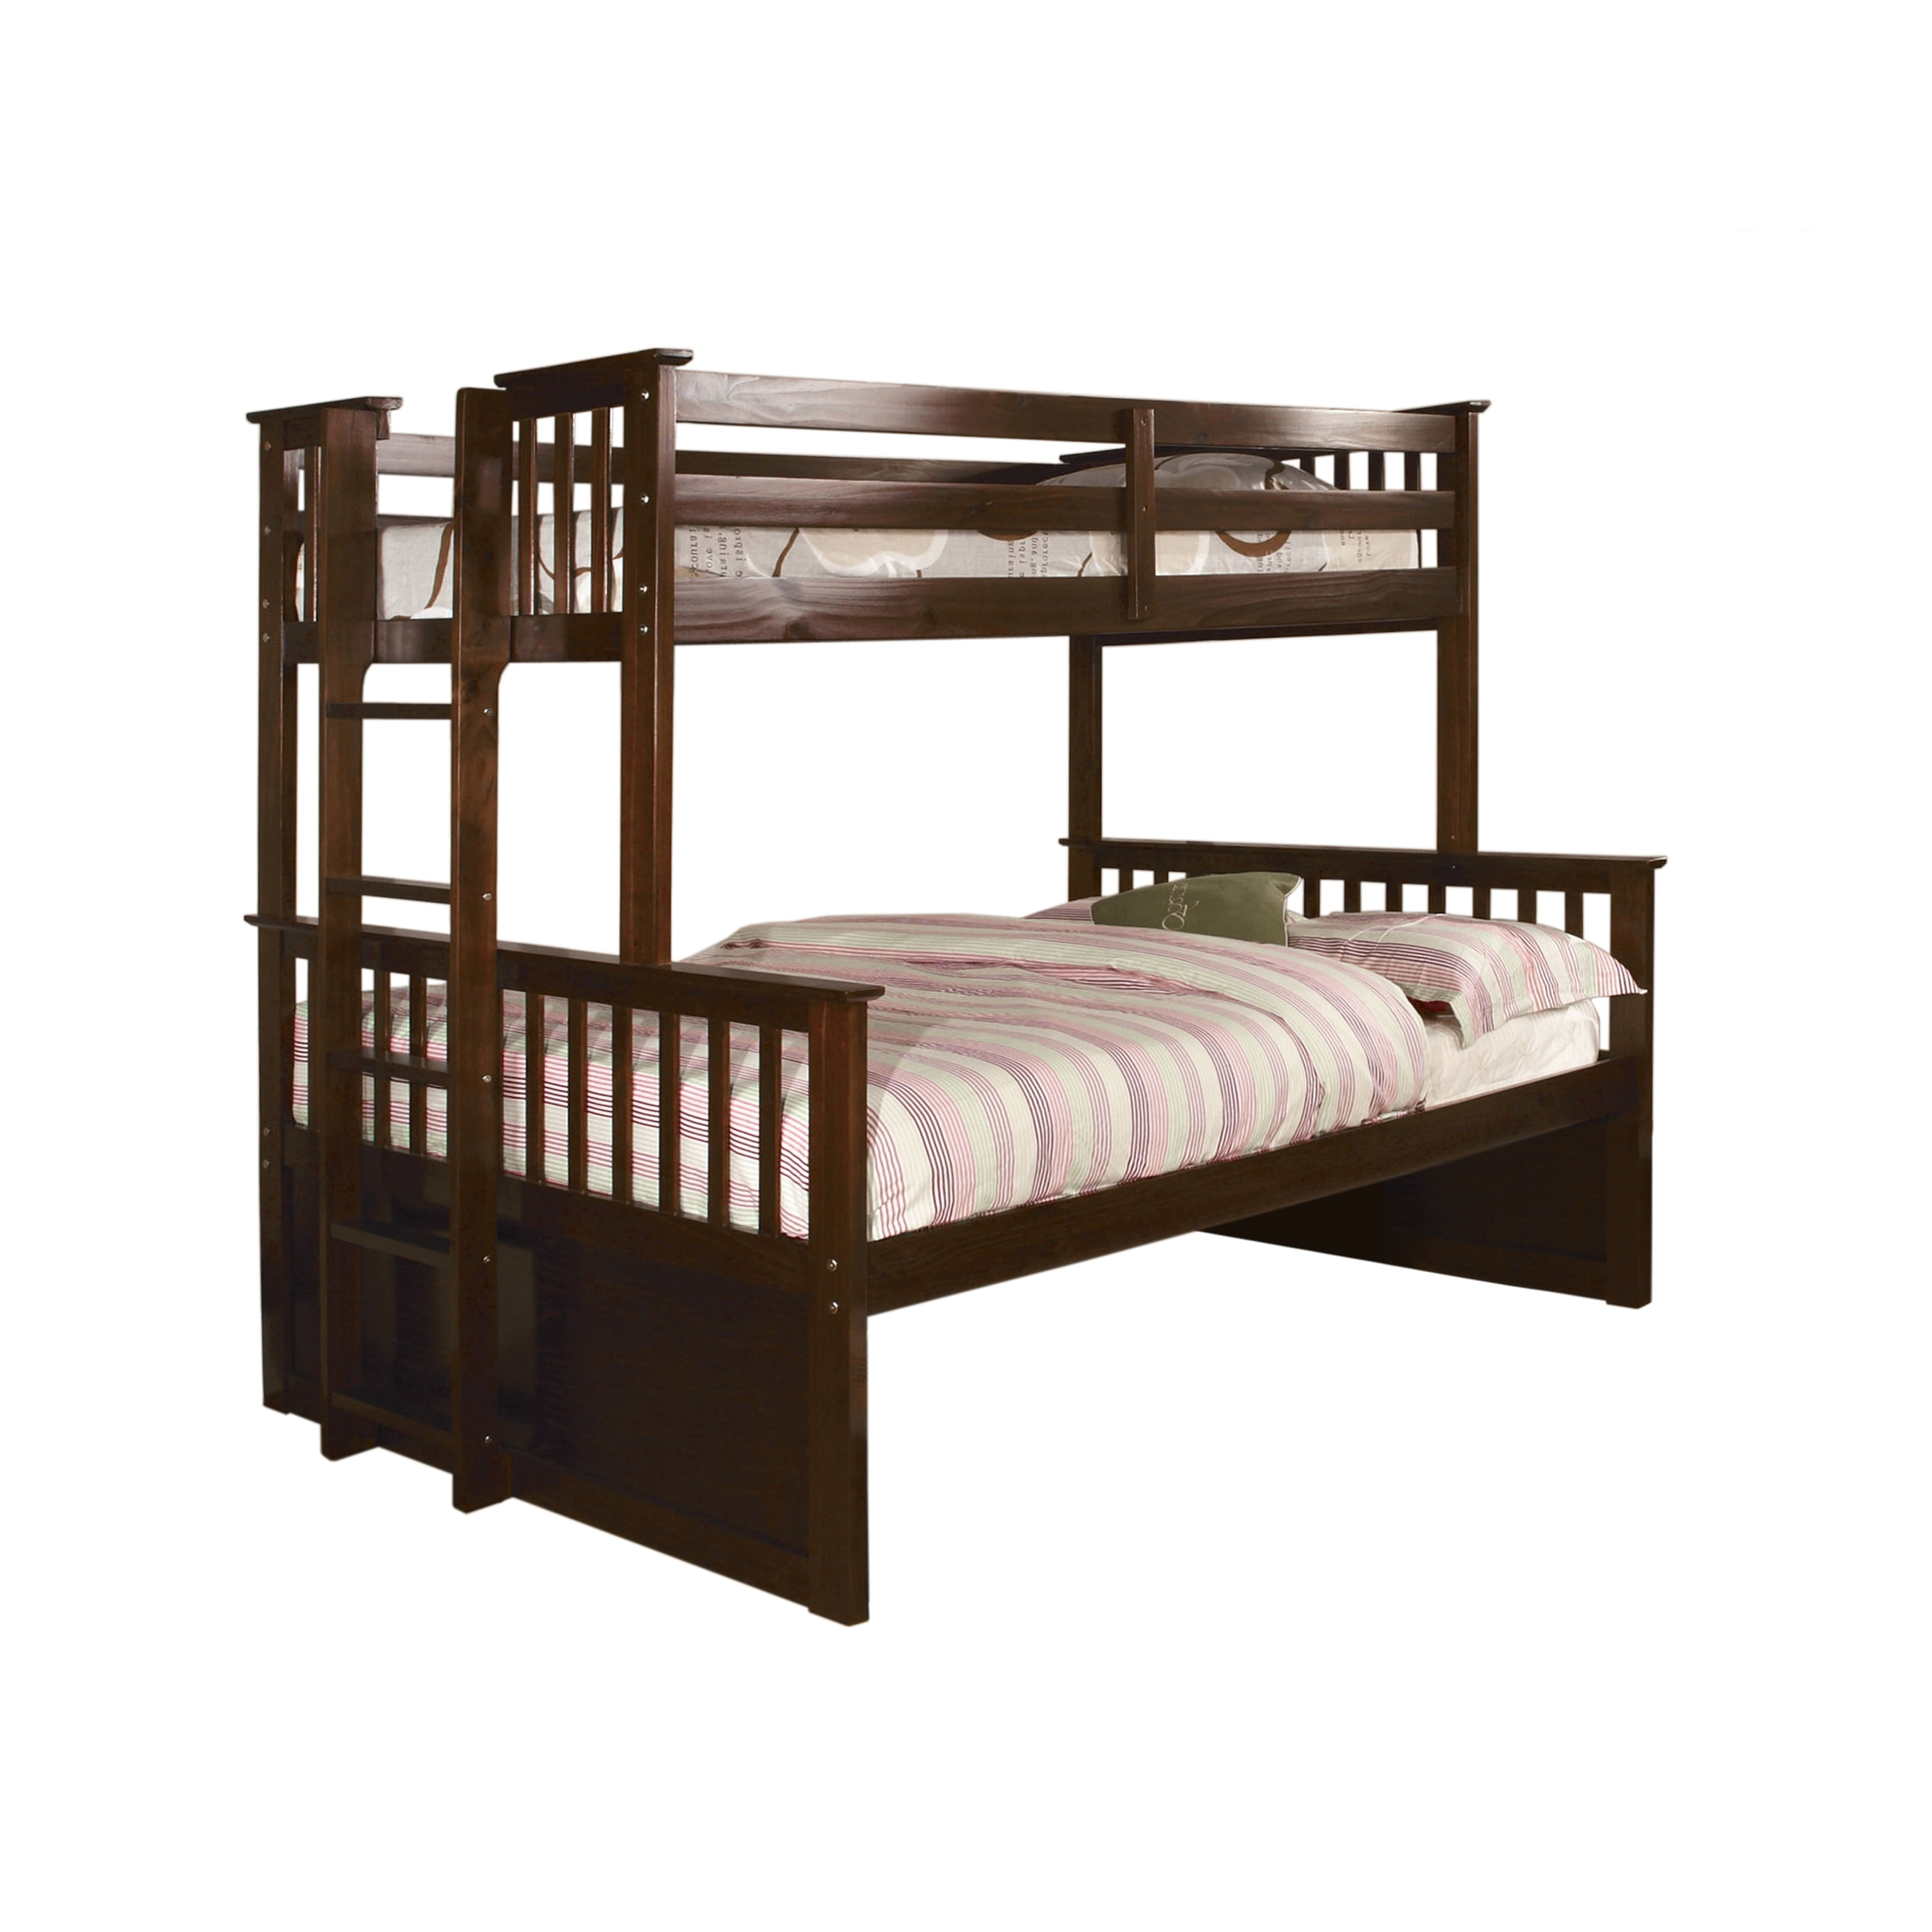 Furniture Of America Rola Mission Twin Xl Queen Bunk Bed On Sale Overstock 10302777